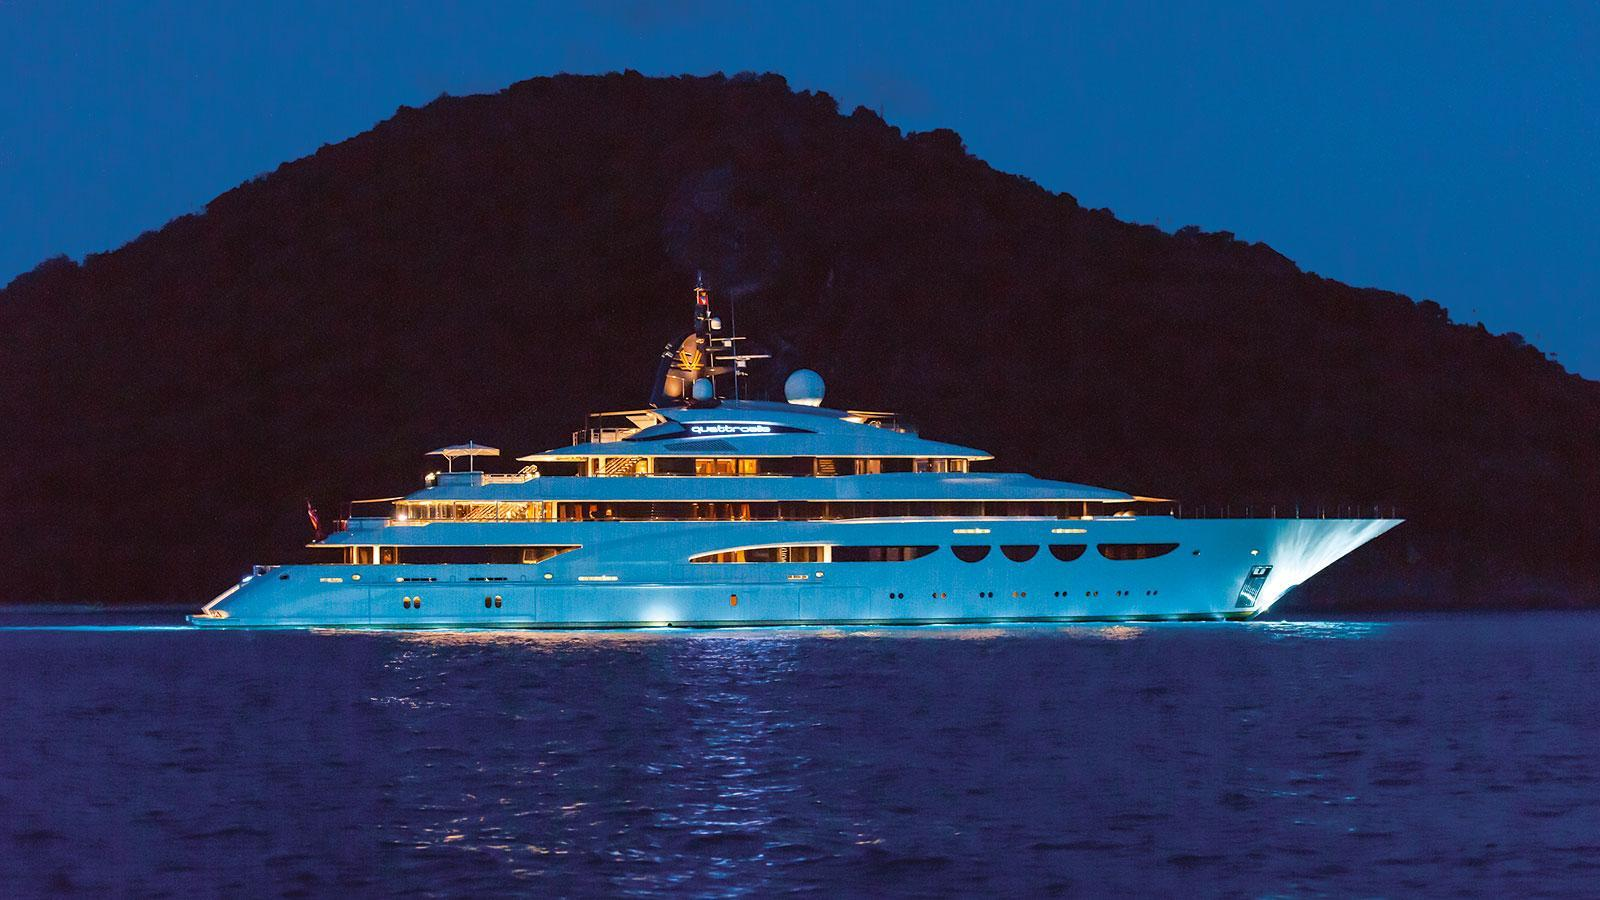 quattroelle-motor-yacht-lurssen-2013-86m-profile-at-night